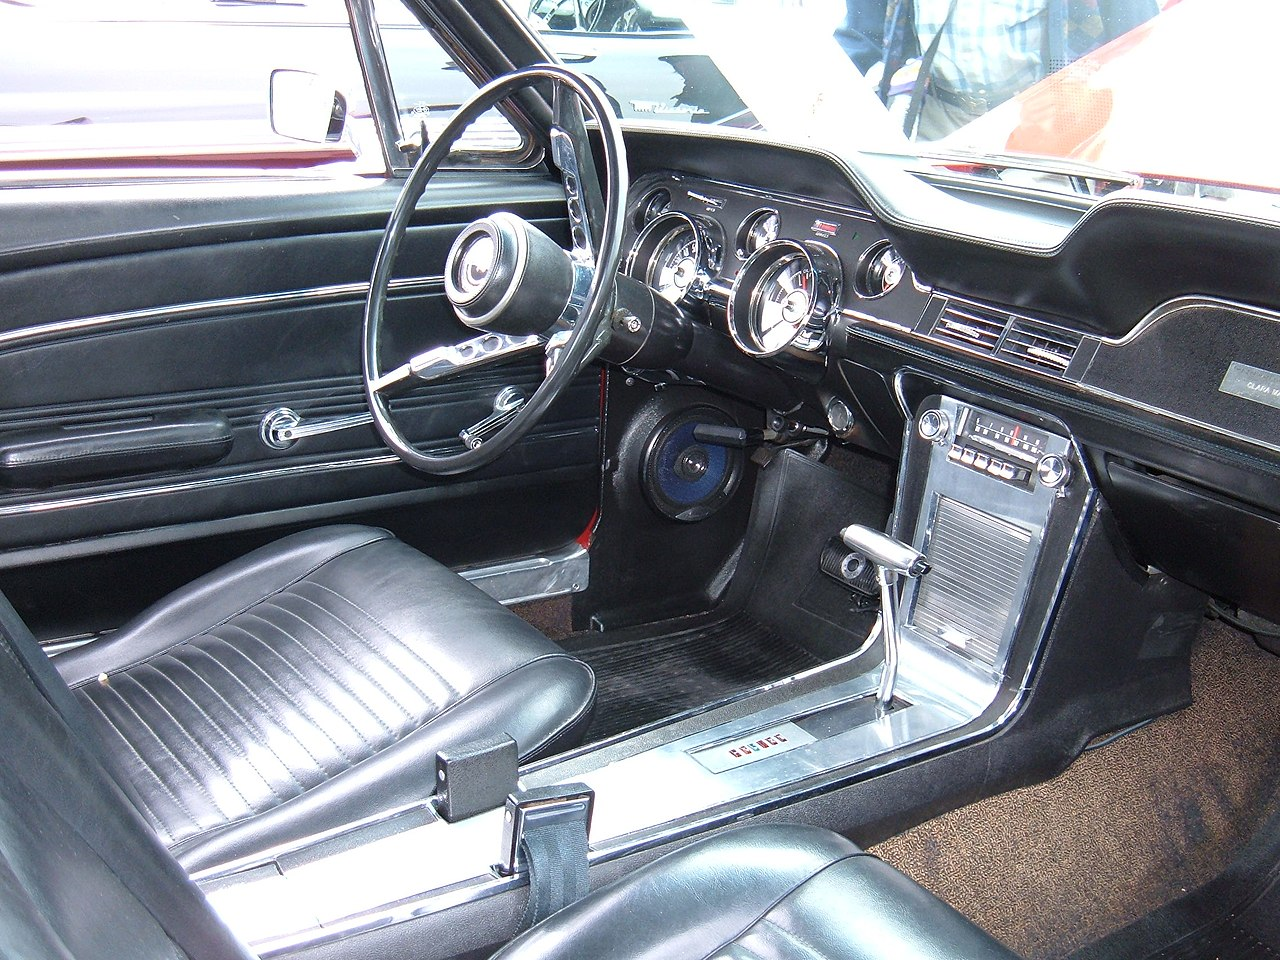 Craigslist Cars For Sale In Sonoma County